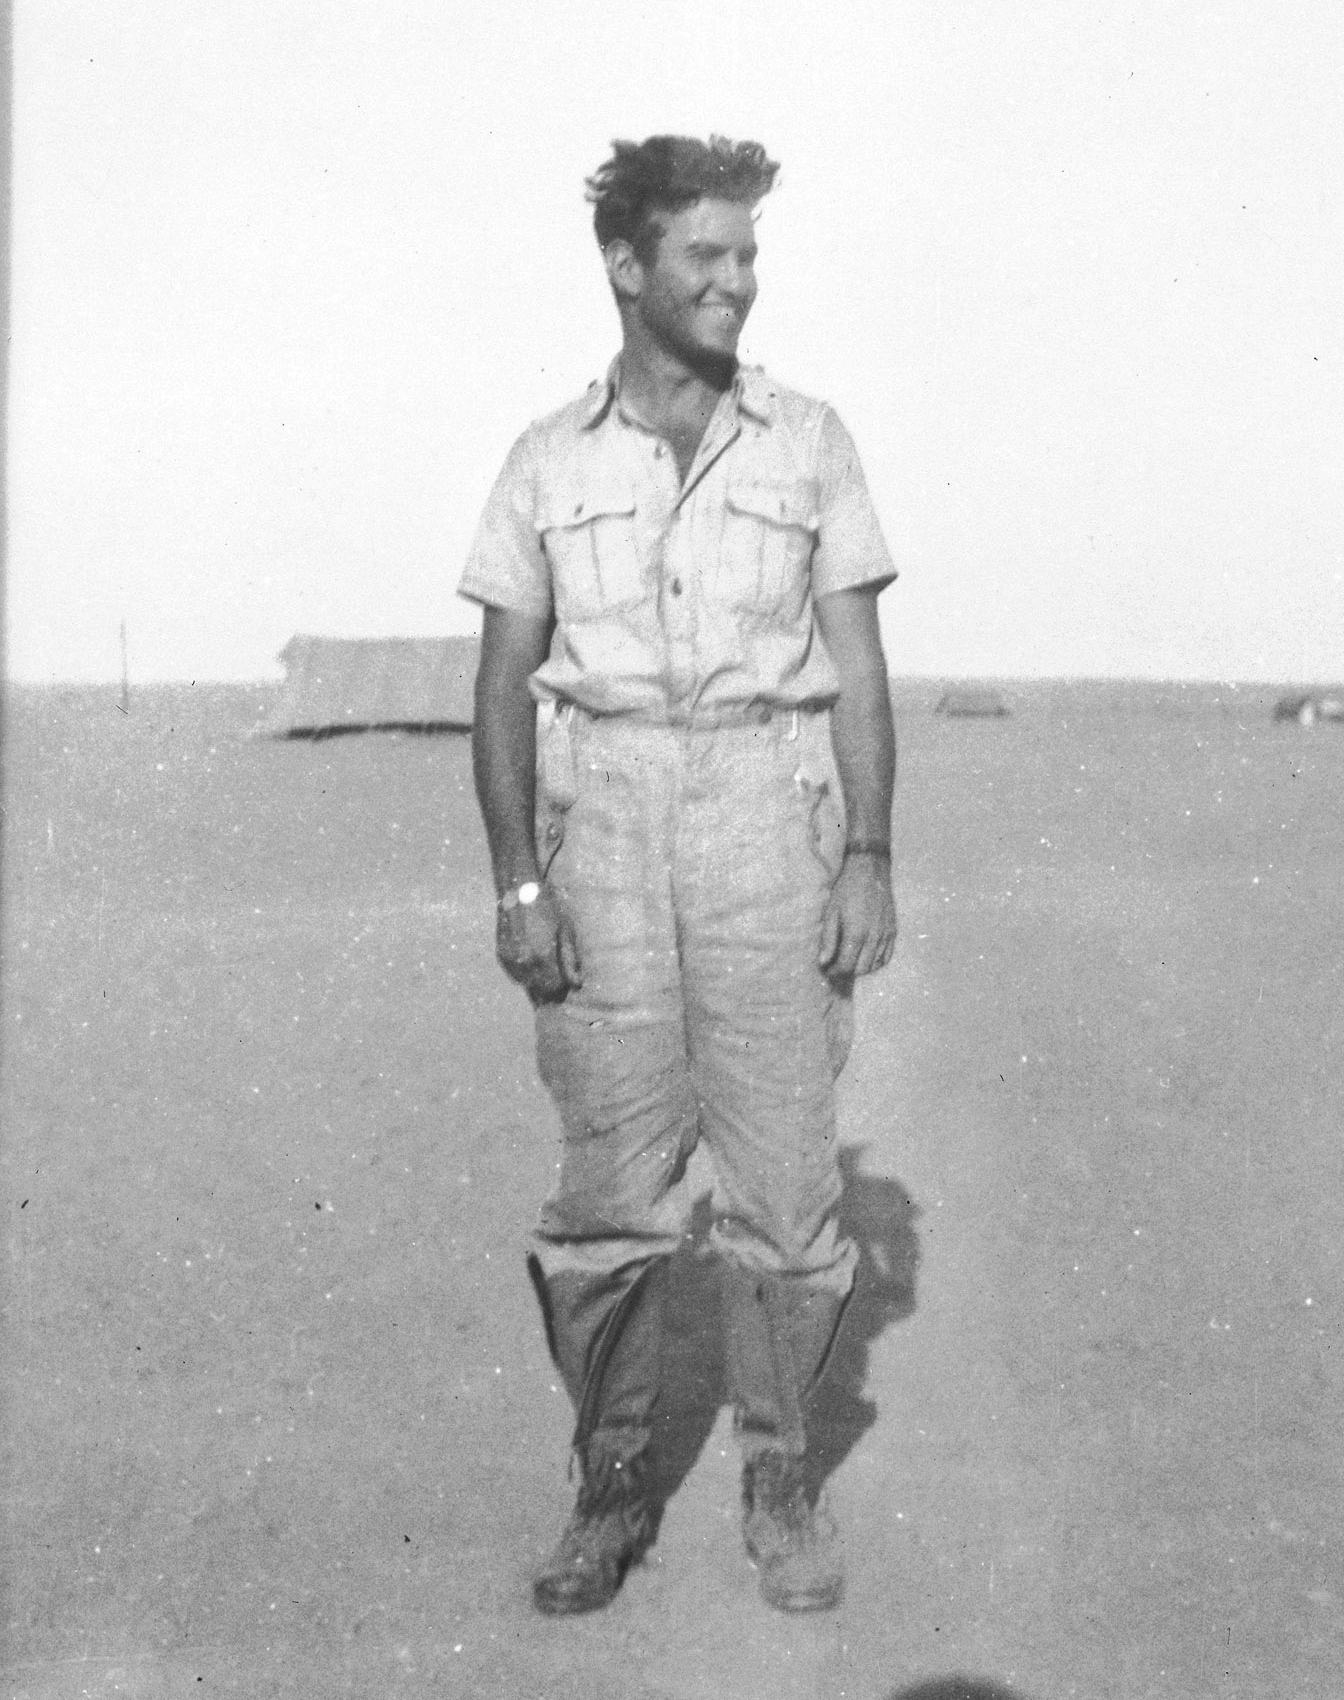 Flight Lieutenant Jack Watts in Tobruk, Libya. He was shot down over the Mediterranean and swam five hours through darkness to safety. He then broke into a German camp—luckily the day after they abandoned the position. He is still wearing the German clothing he found in the camp as he had discarded his own clothing during his long swim. PHOTO:  DND Archives, PL-13674